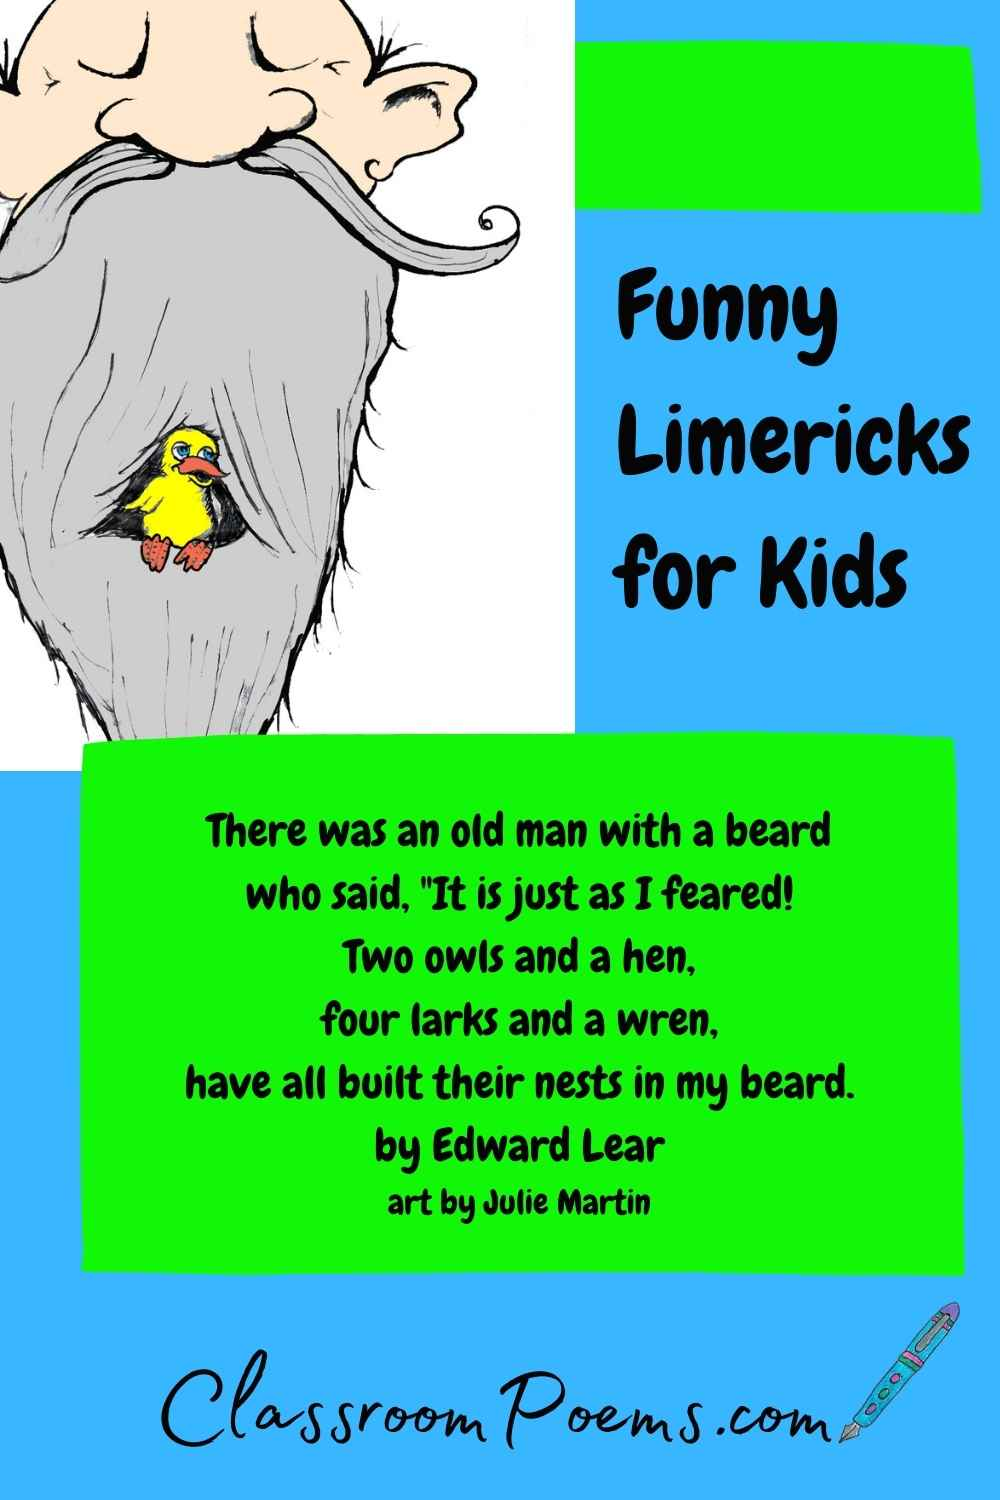 Funny Limerick poems on ClassroomPoems.com.